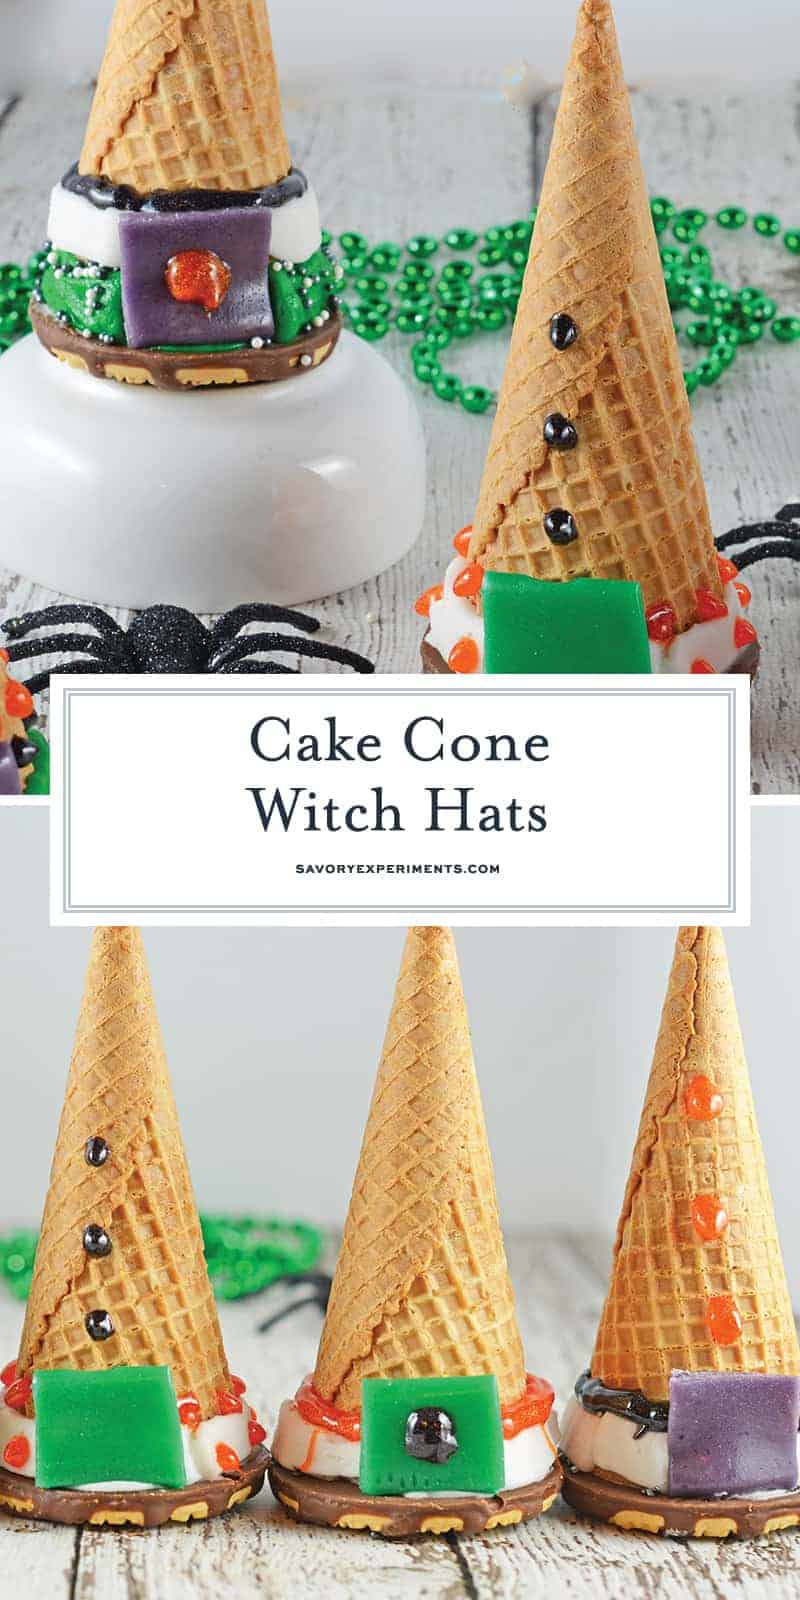 Cake Cone Witch Hats are the perfect halloween activity for kids! Bake cake into a waffle cone, cap it with a cookie, and let them decorate their own treats! #cakecone #icecreamcakecone #halloweentreats www.savoryexperiments.com